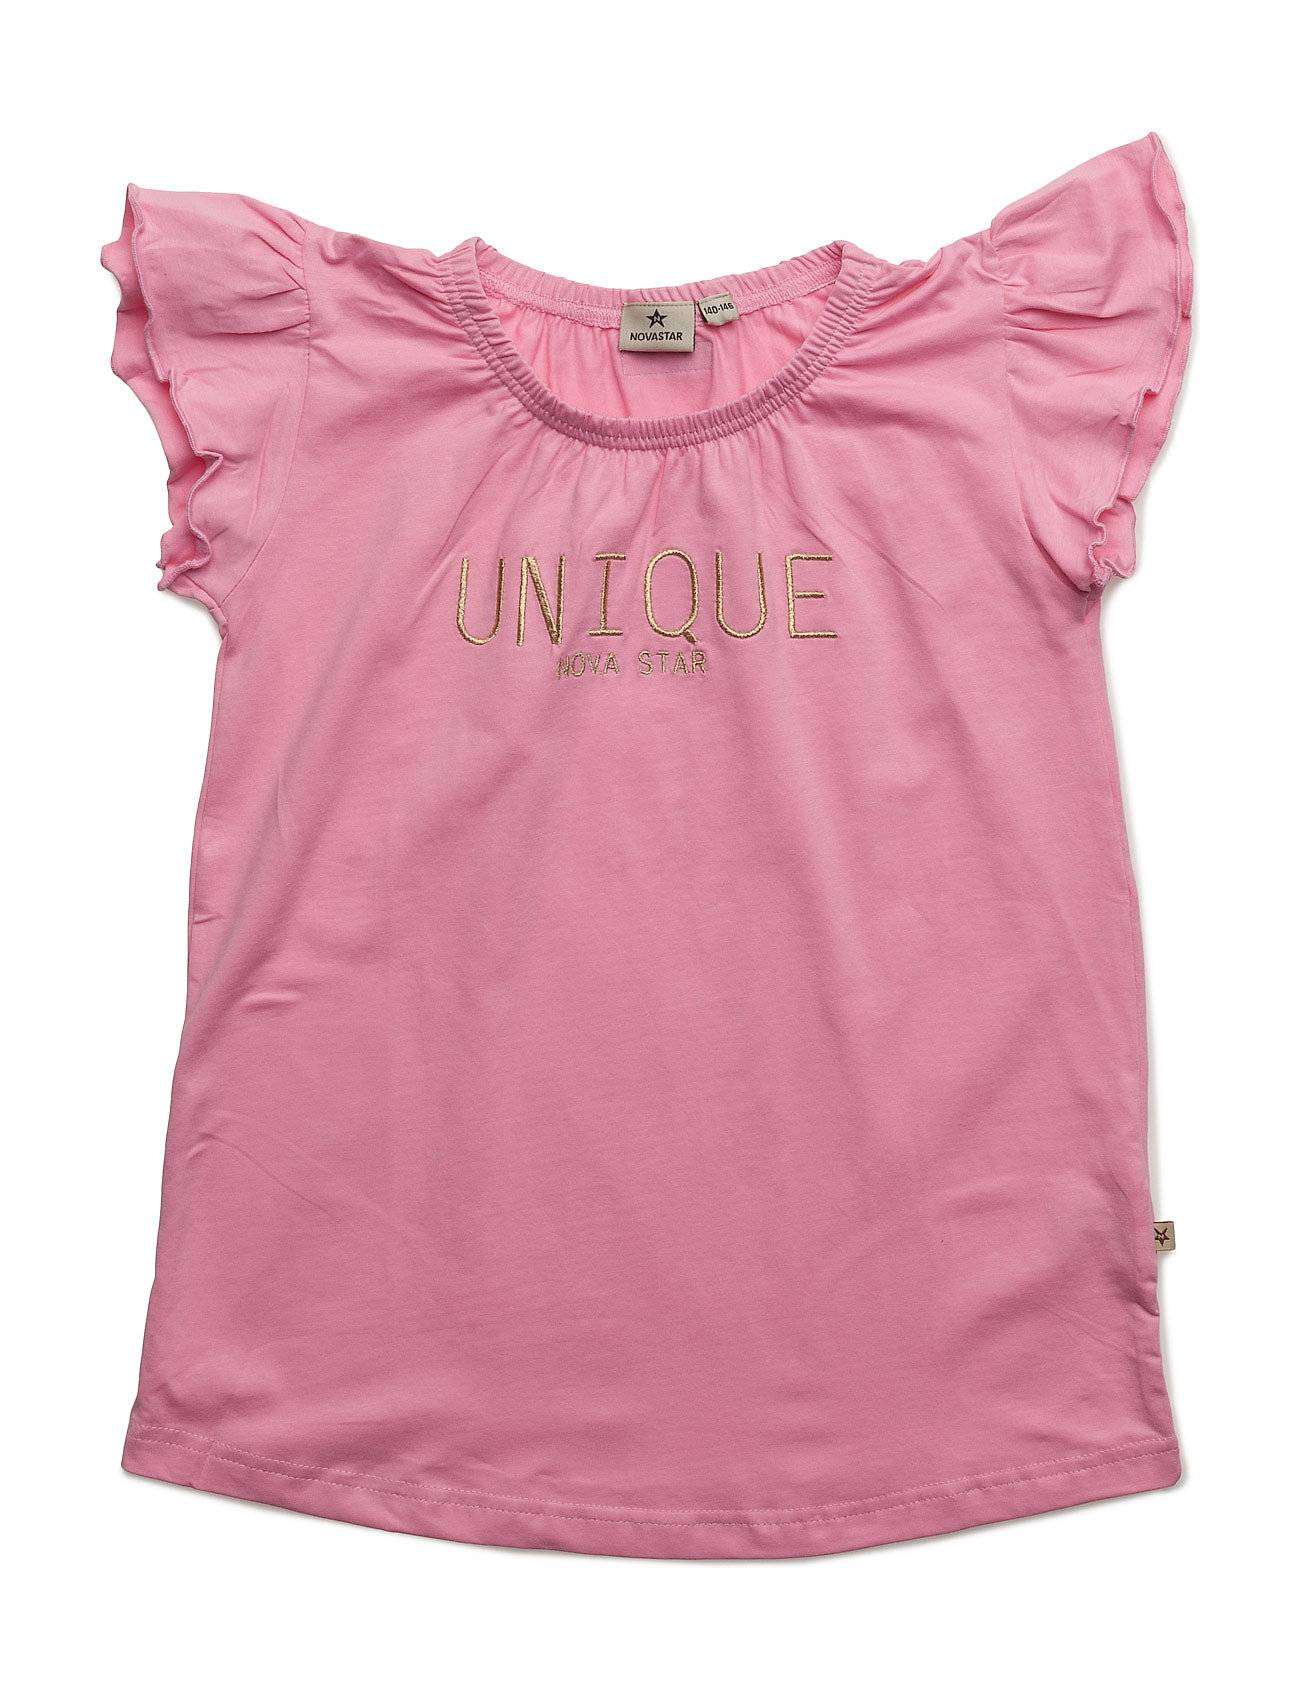 NOVA STAR Unique Top Pink